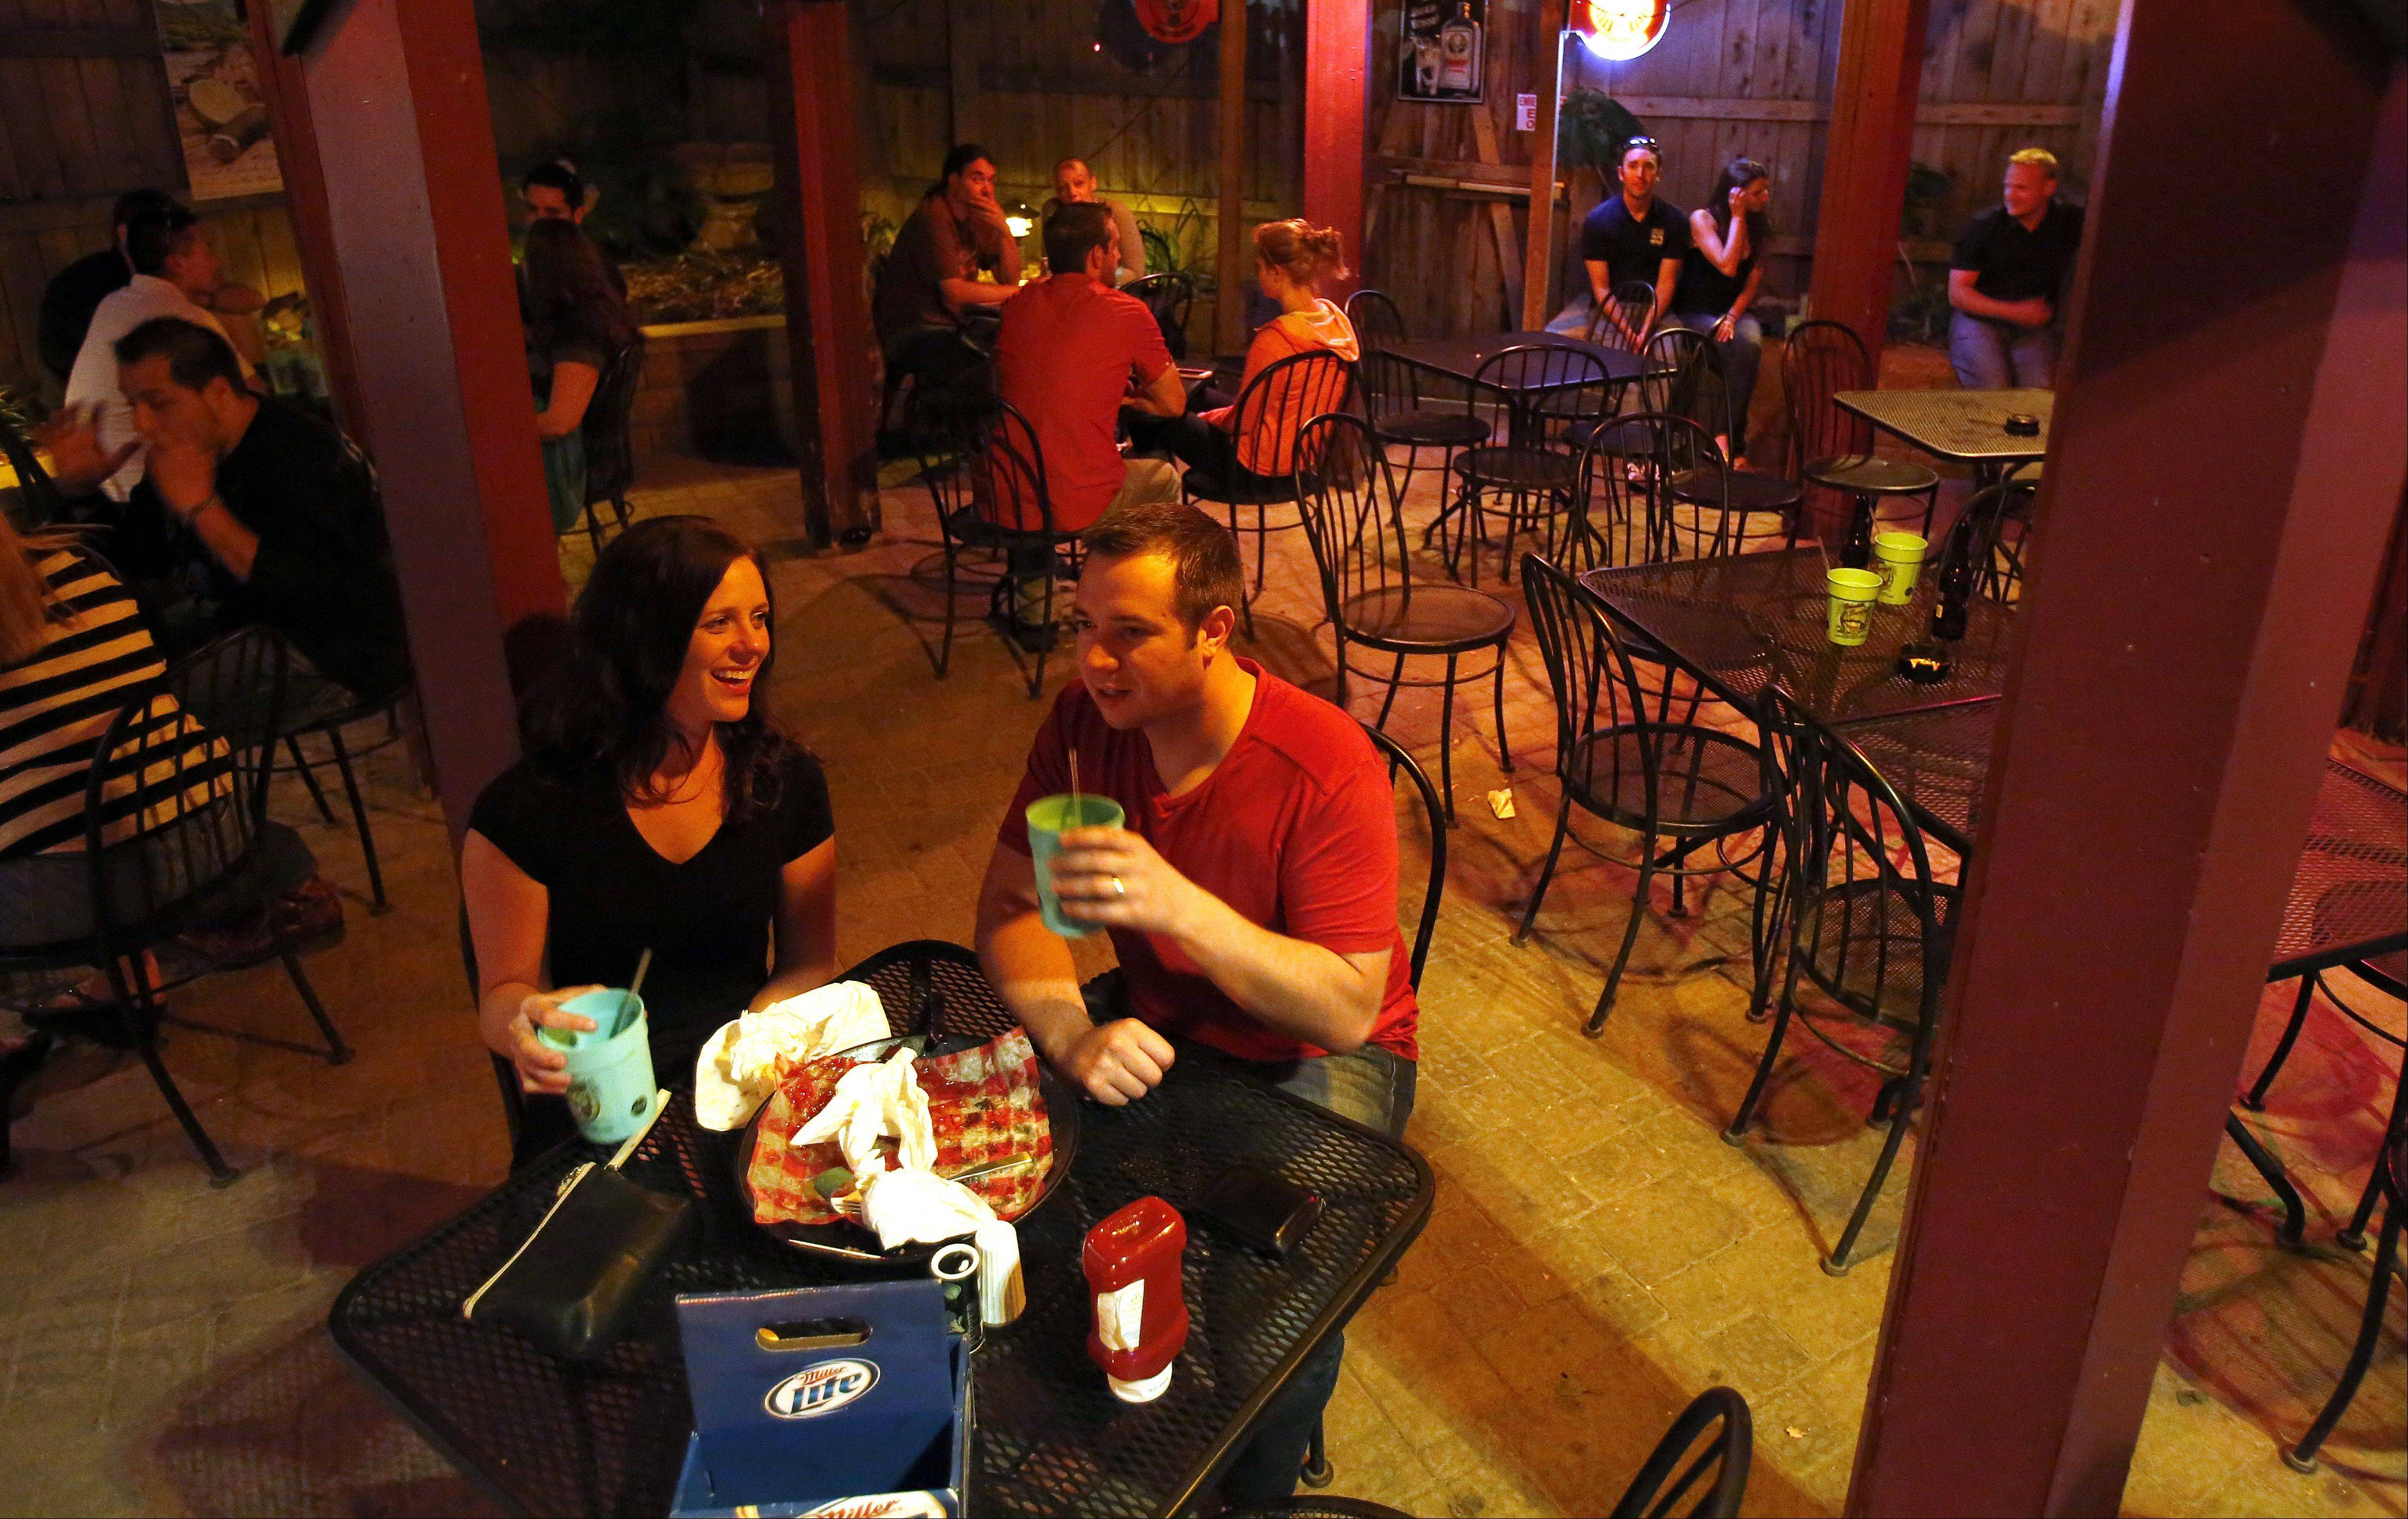 Megan and Chris Roney of Gilberts enjoy a drink outdoors at Bandito Barney's in East Dundee.